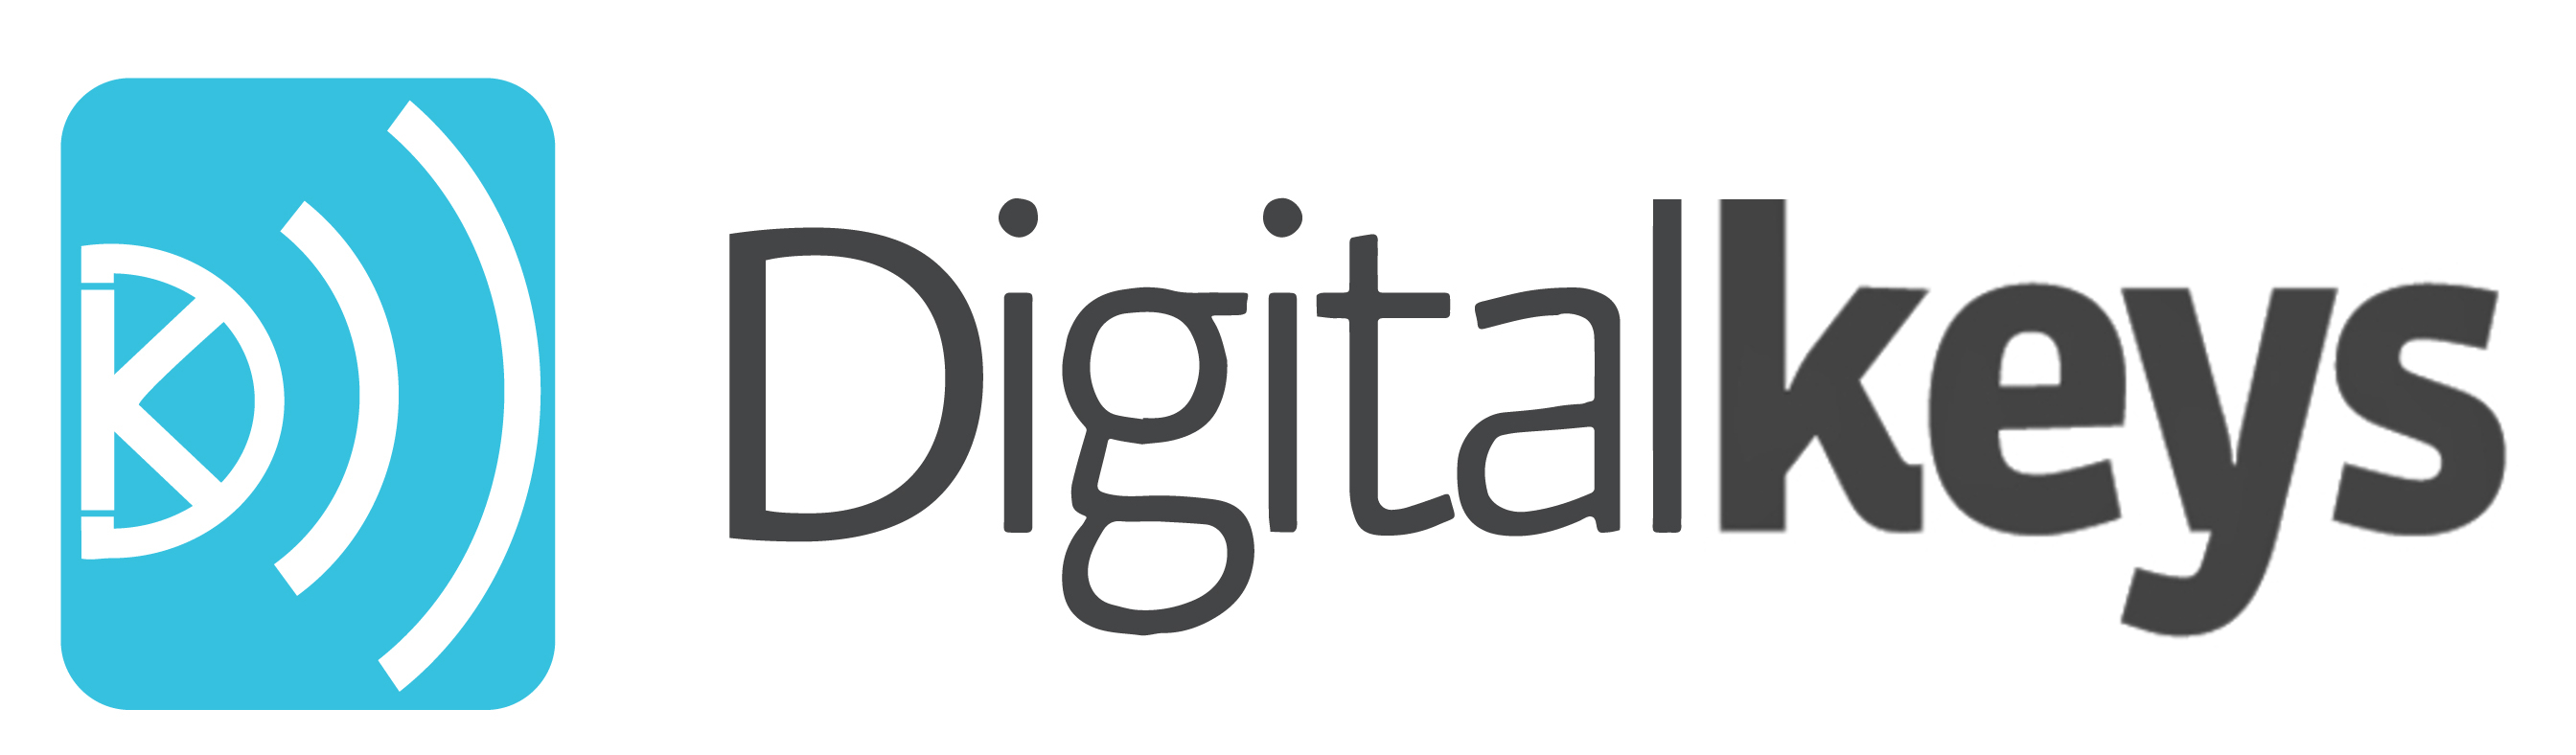 Digital Keys Logo